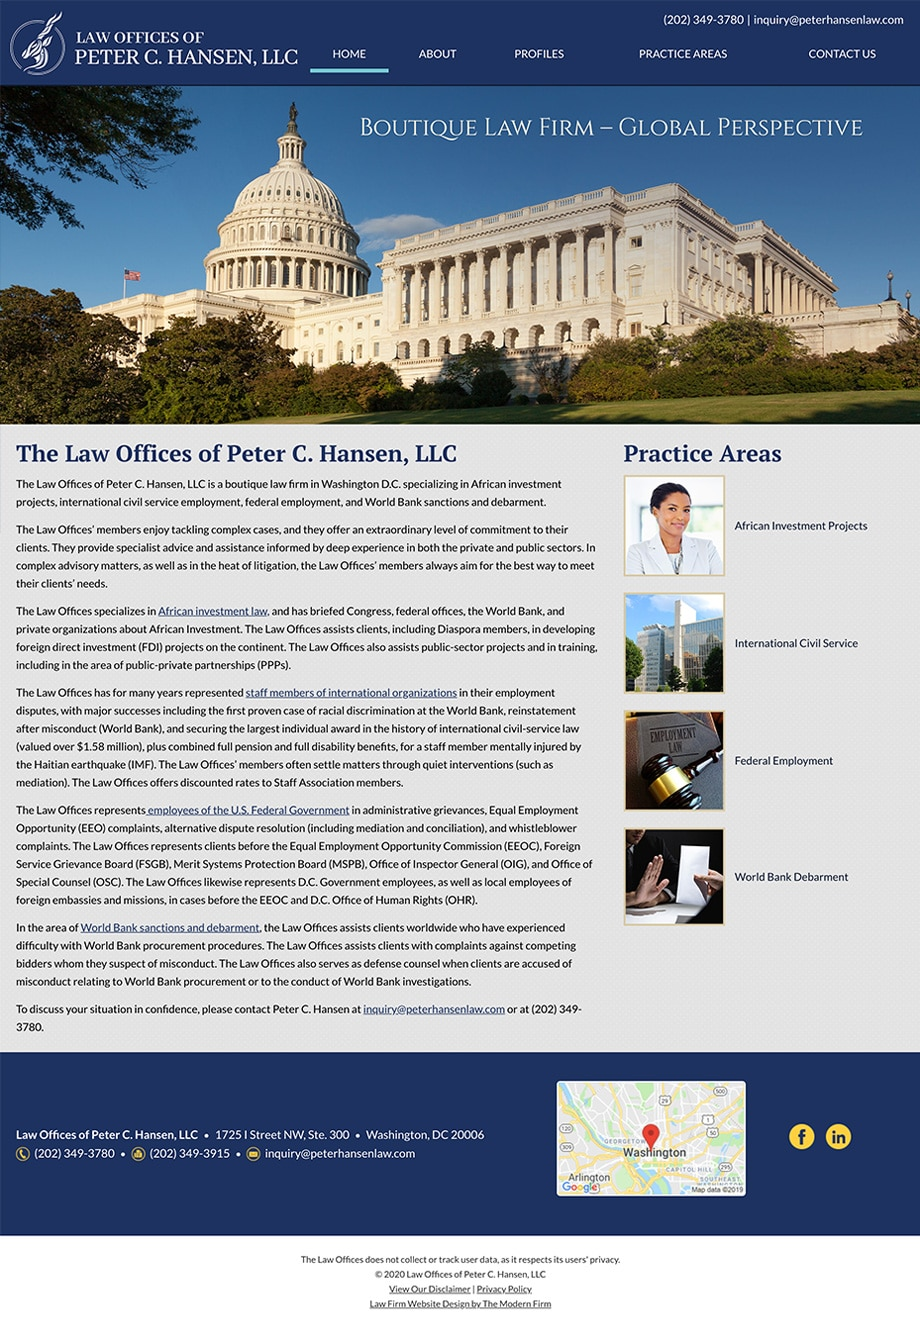 Law Firm Website Design for Law Offices of Peter C. Hansen, LLC